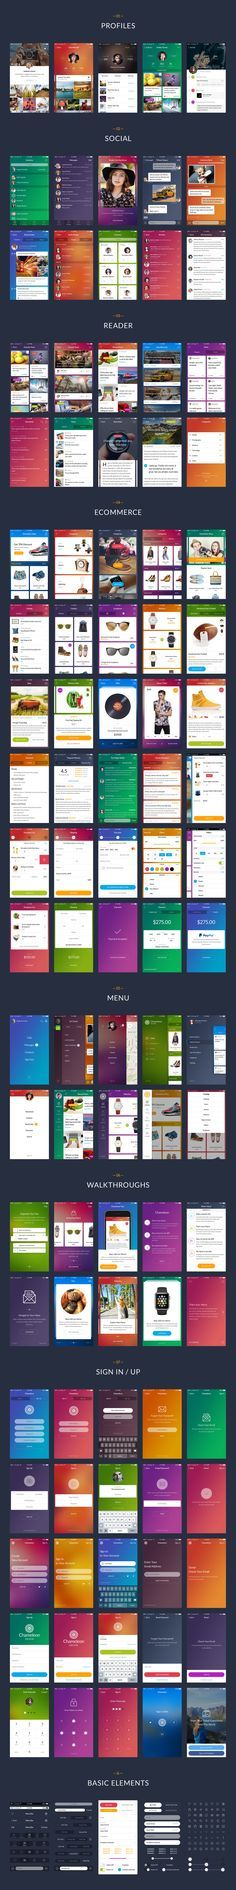 Chameleon is a modern mobile UI kit for Sketch and Photoshop. With 100 beautiful screens in 7 categories, 15 unique themes, 60+ icons and hundreds of neatly organized components you can easily create design for your mobile app.